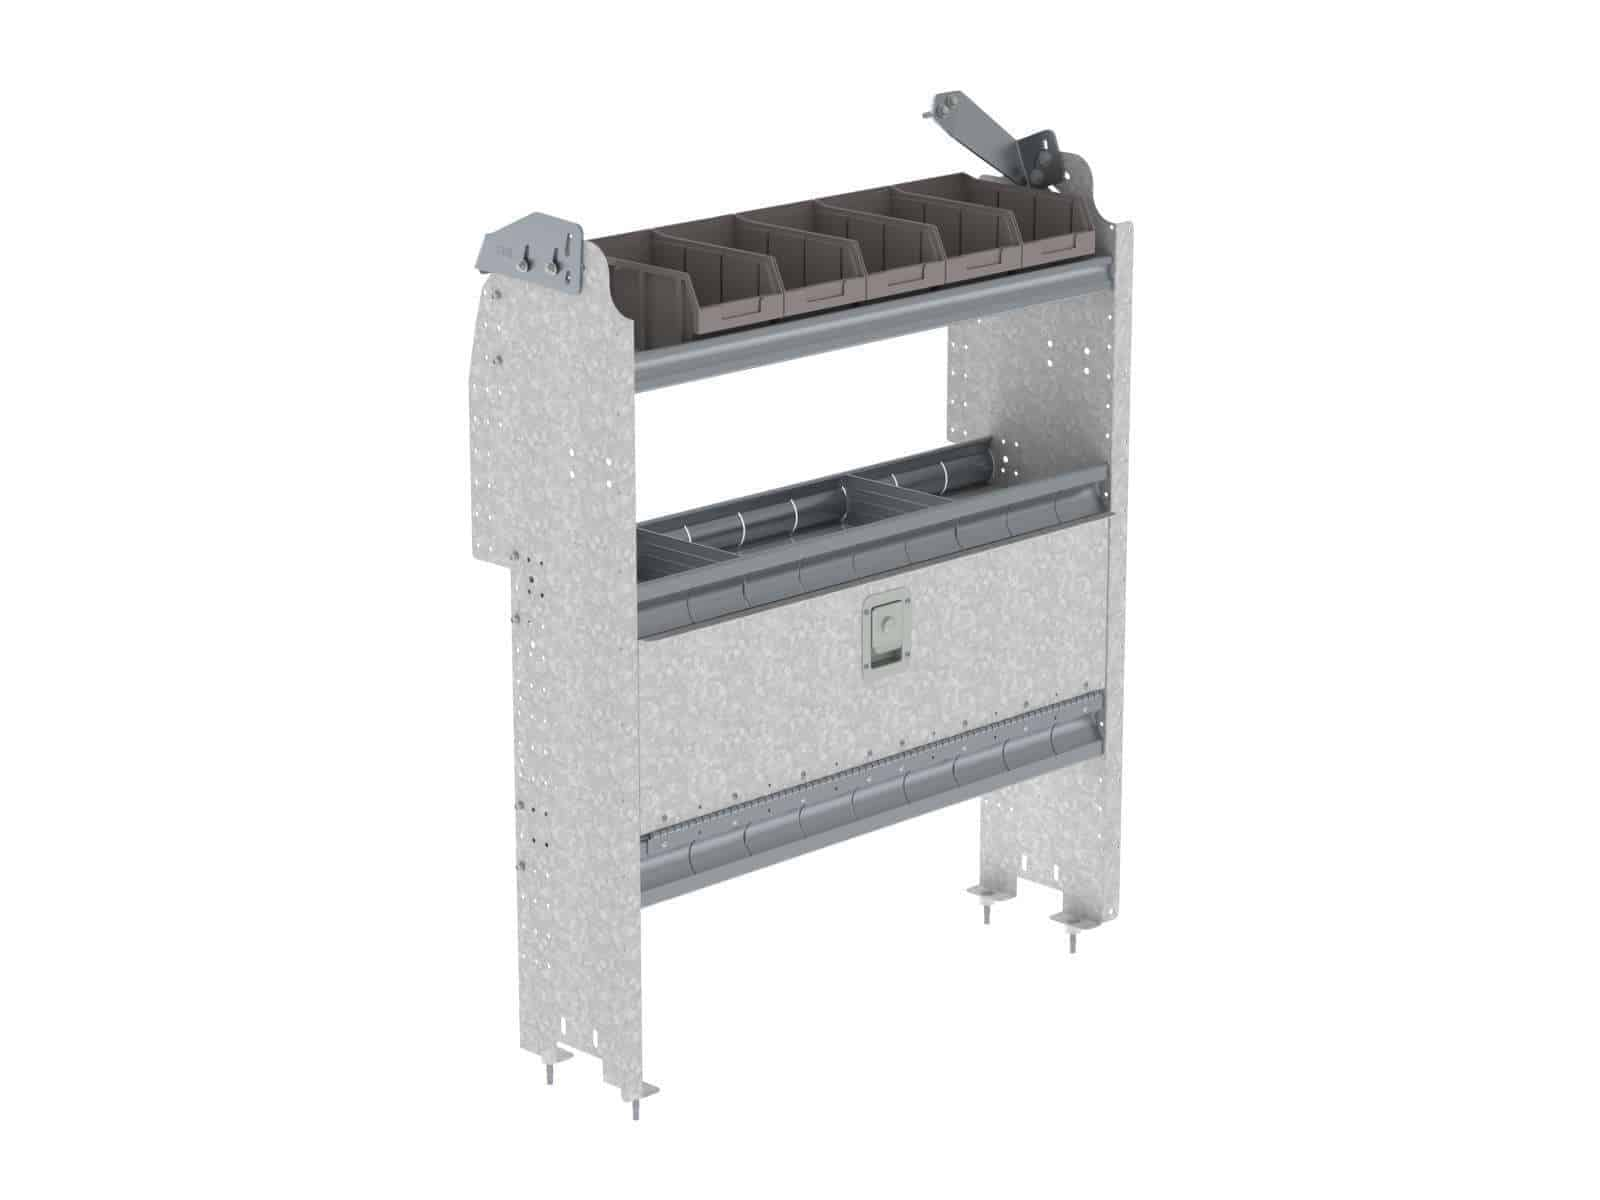 Van-Storage-Bins-With-Contoured-Back-Unit-Ford-Transit-Connect-H36-E